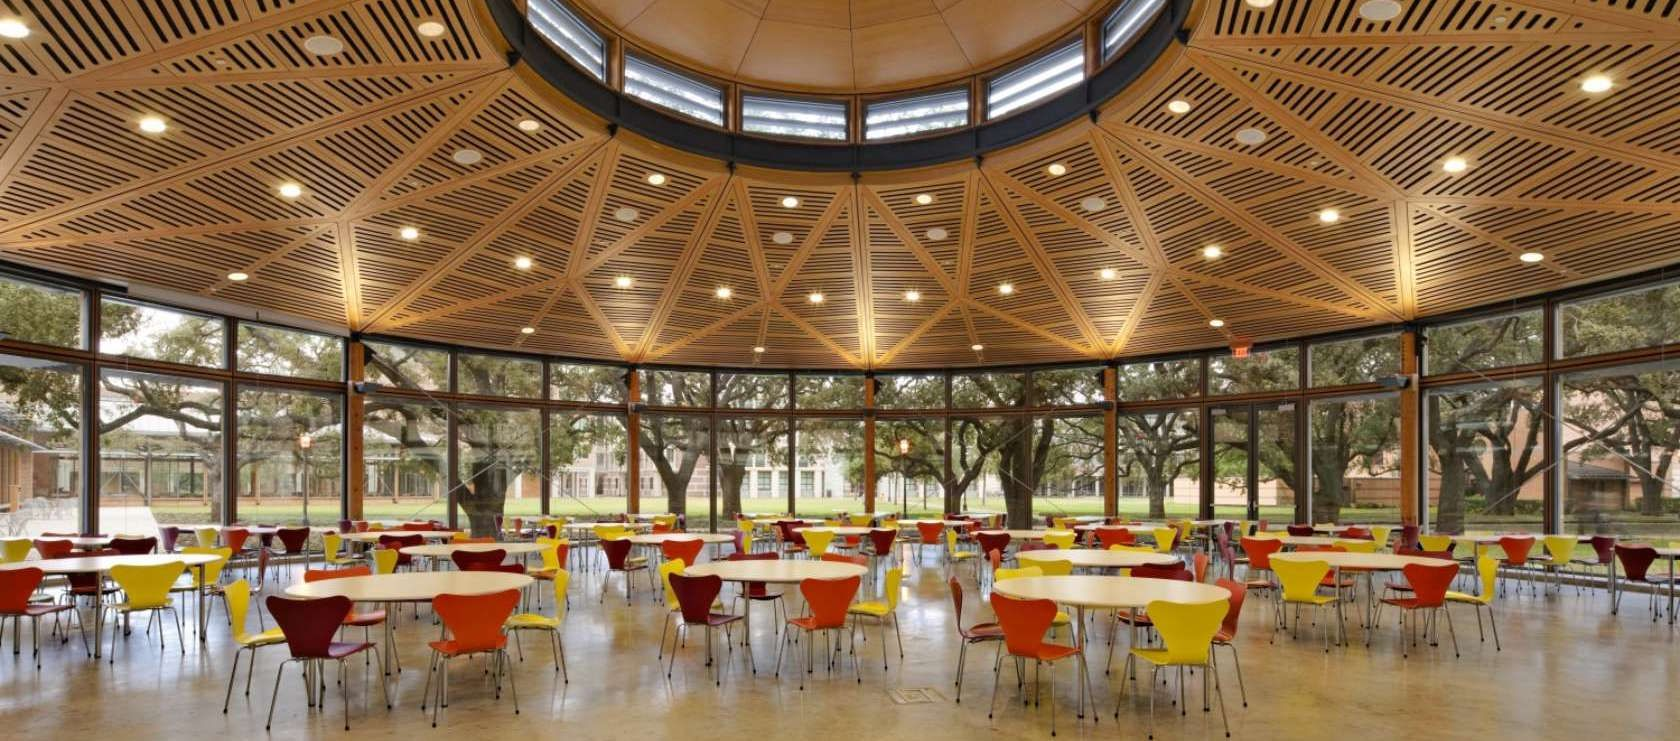 Top 30 College Dining Halls Lendedu College Dining Hall Dining Hall Residence Hall